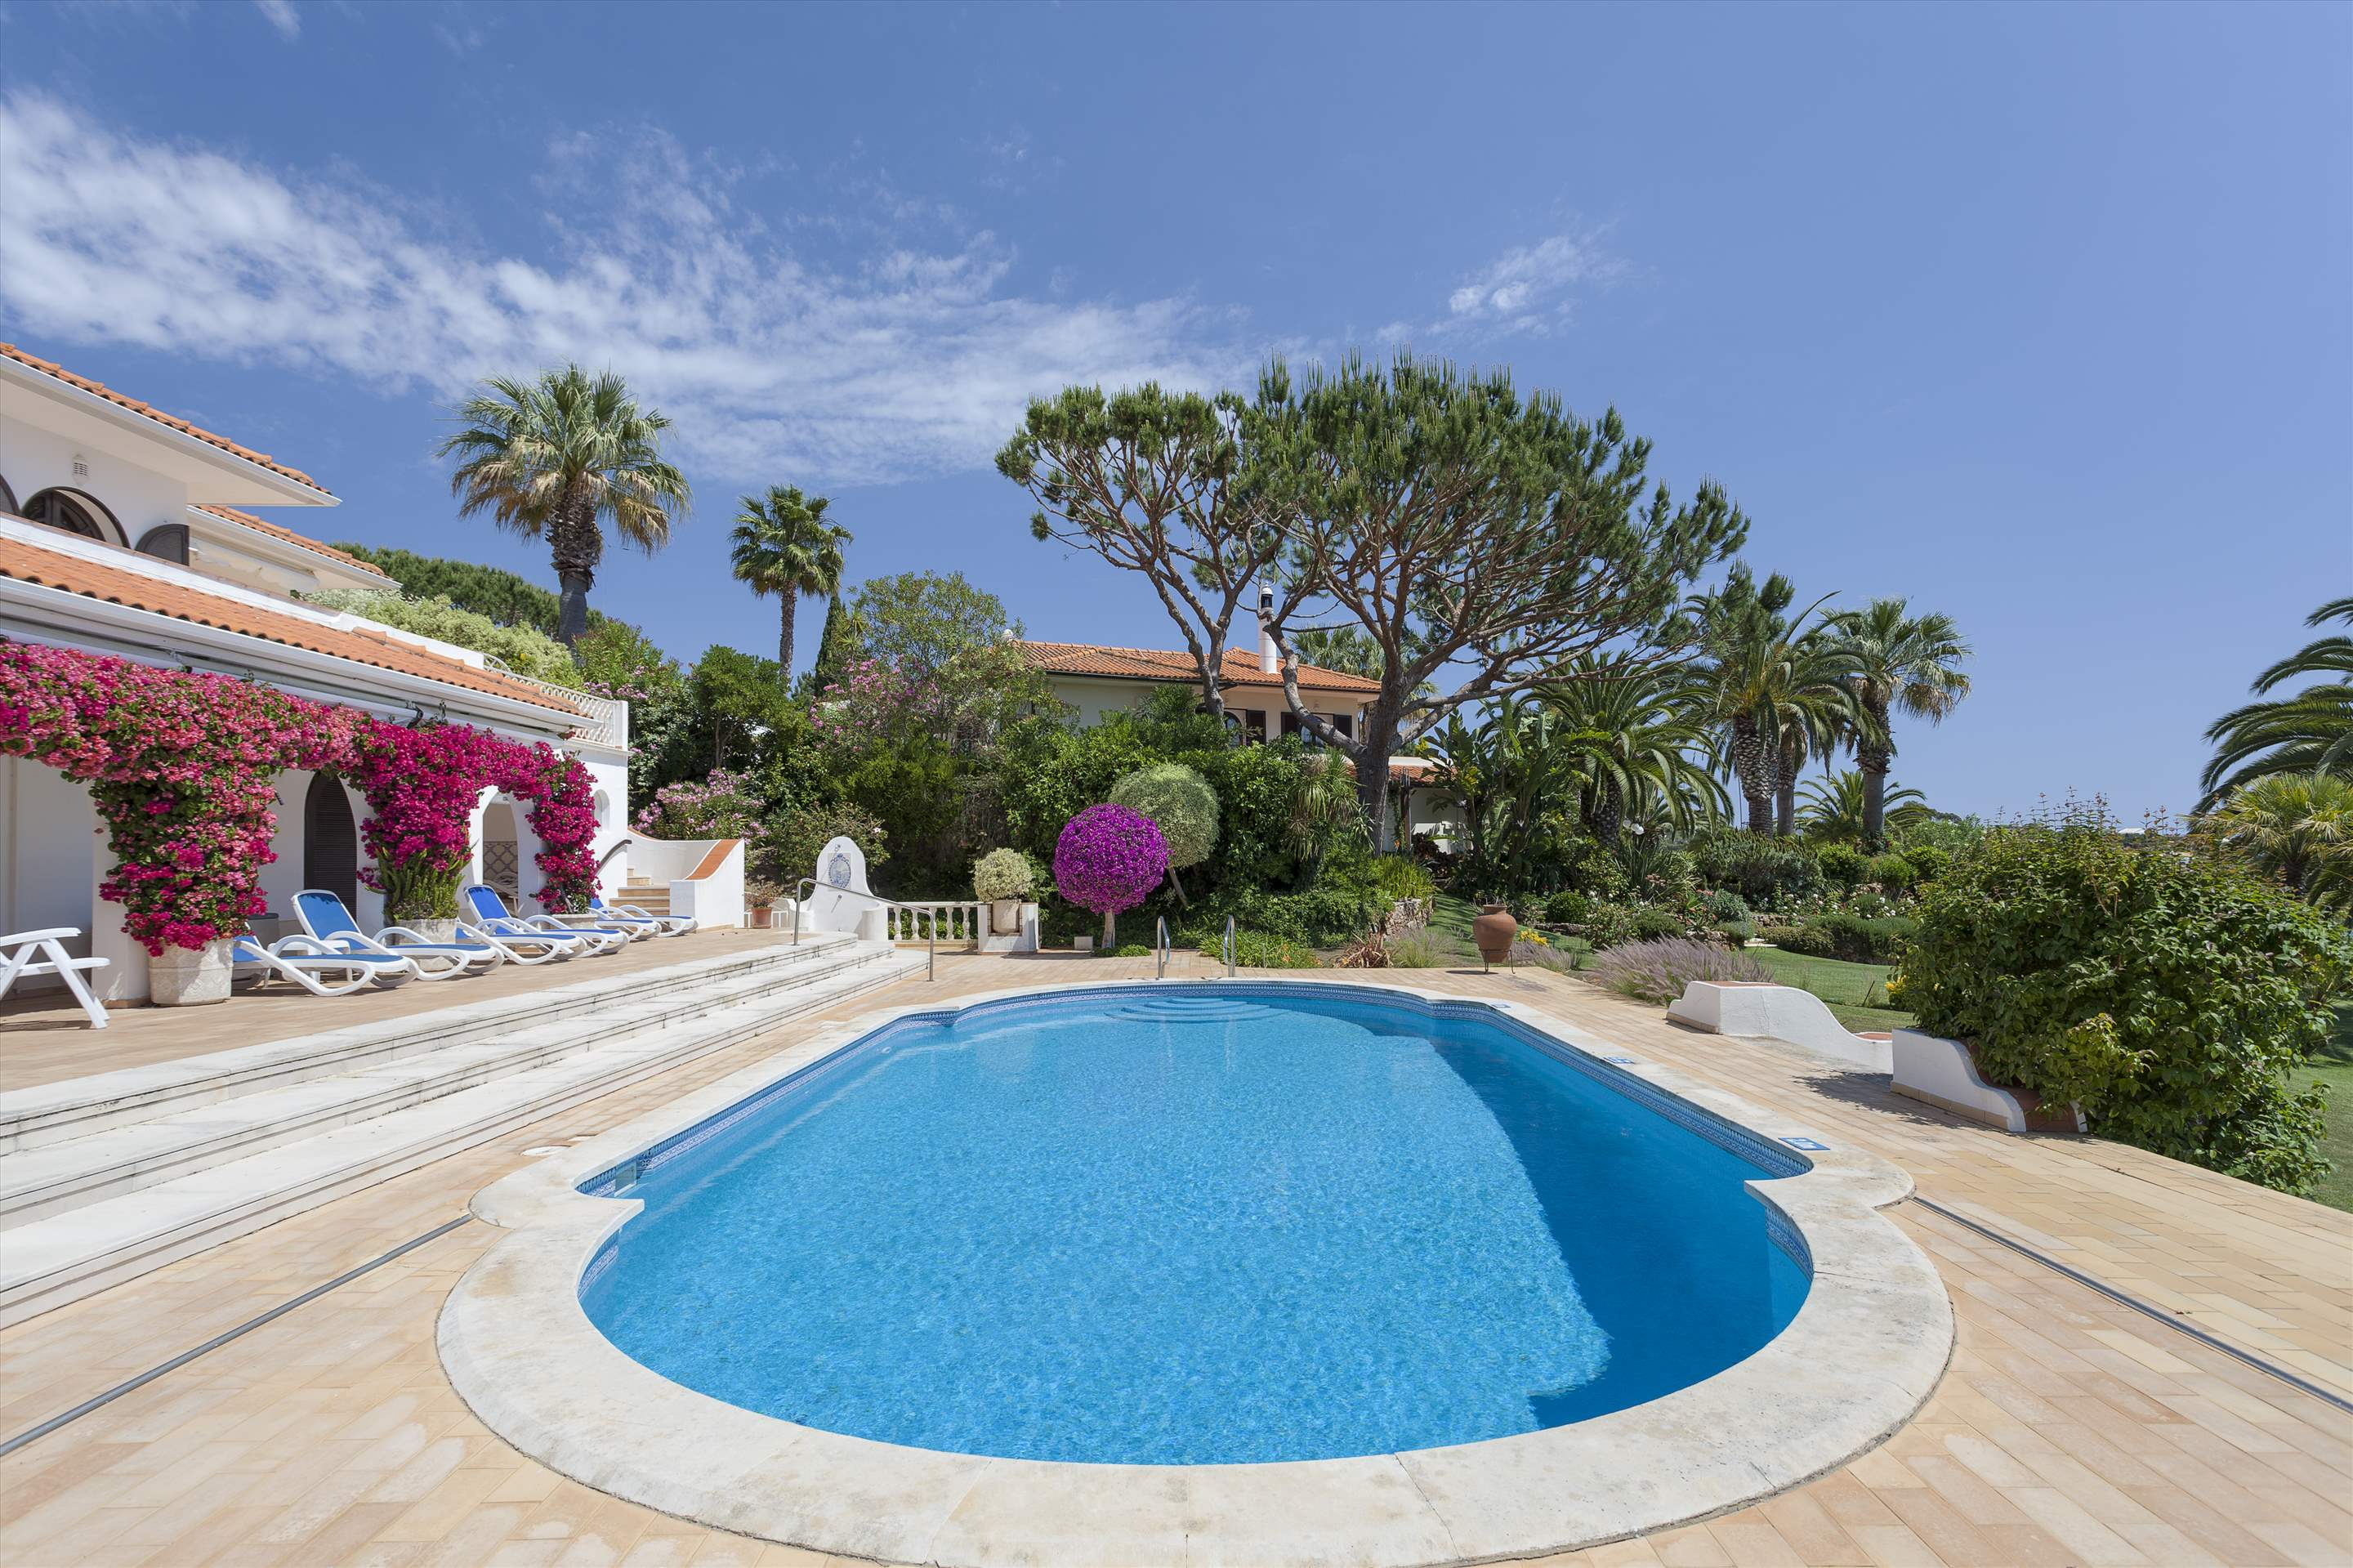 Villa Lake View, 4 bedroom villa in Quinta do Lago, Algarve Photo #11